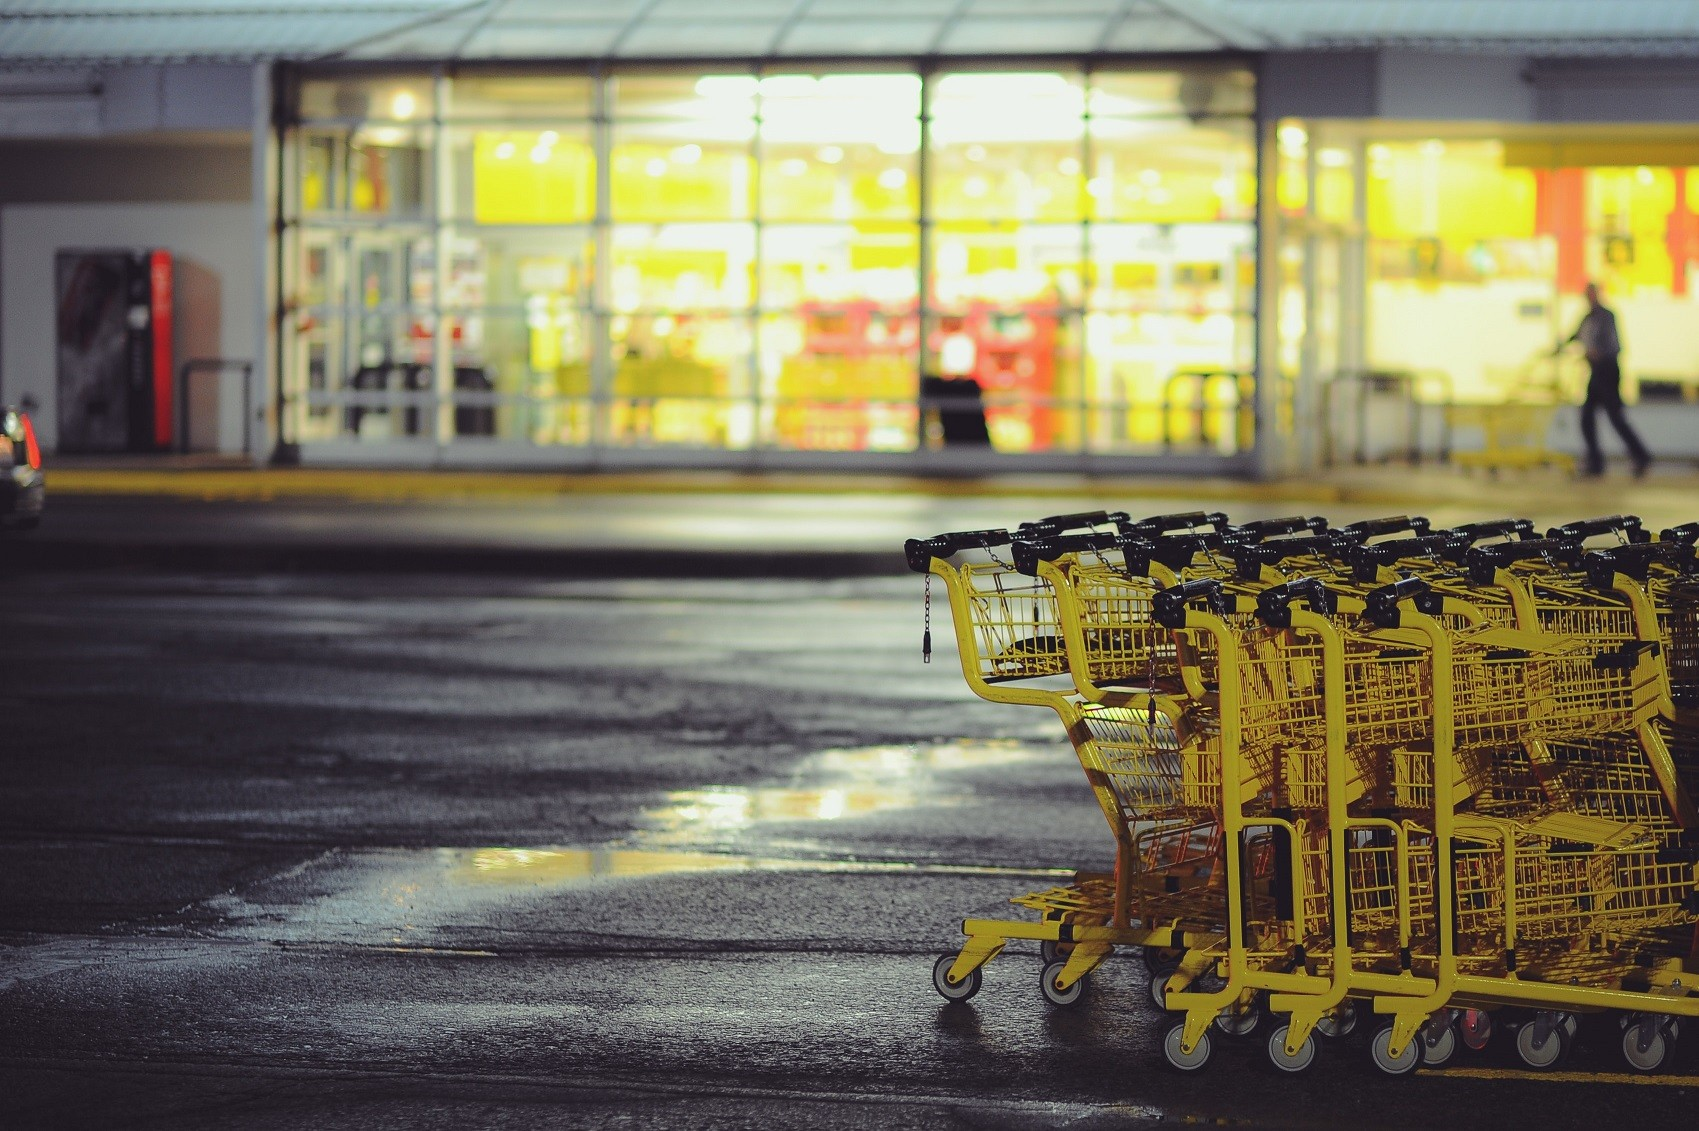 Empty shopping carts in front of superstore